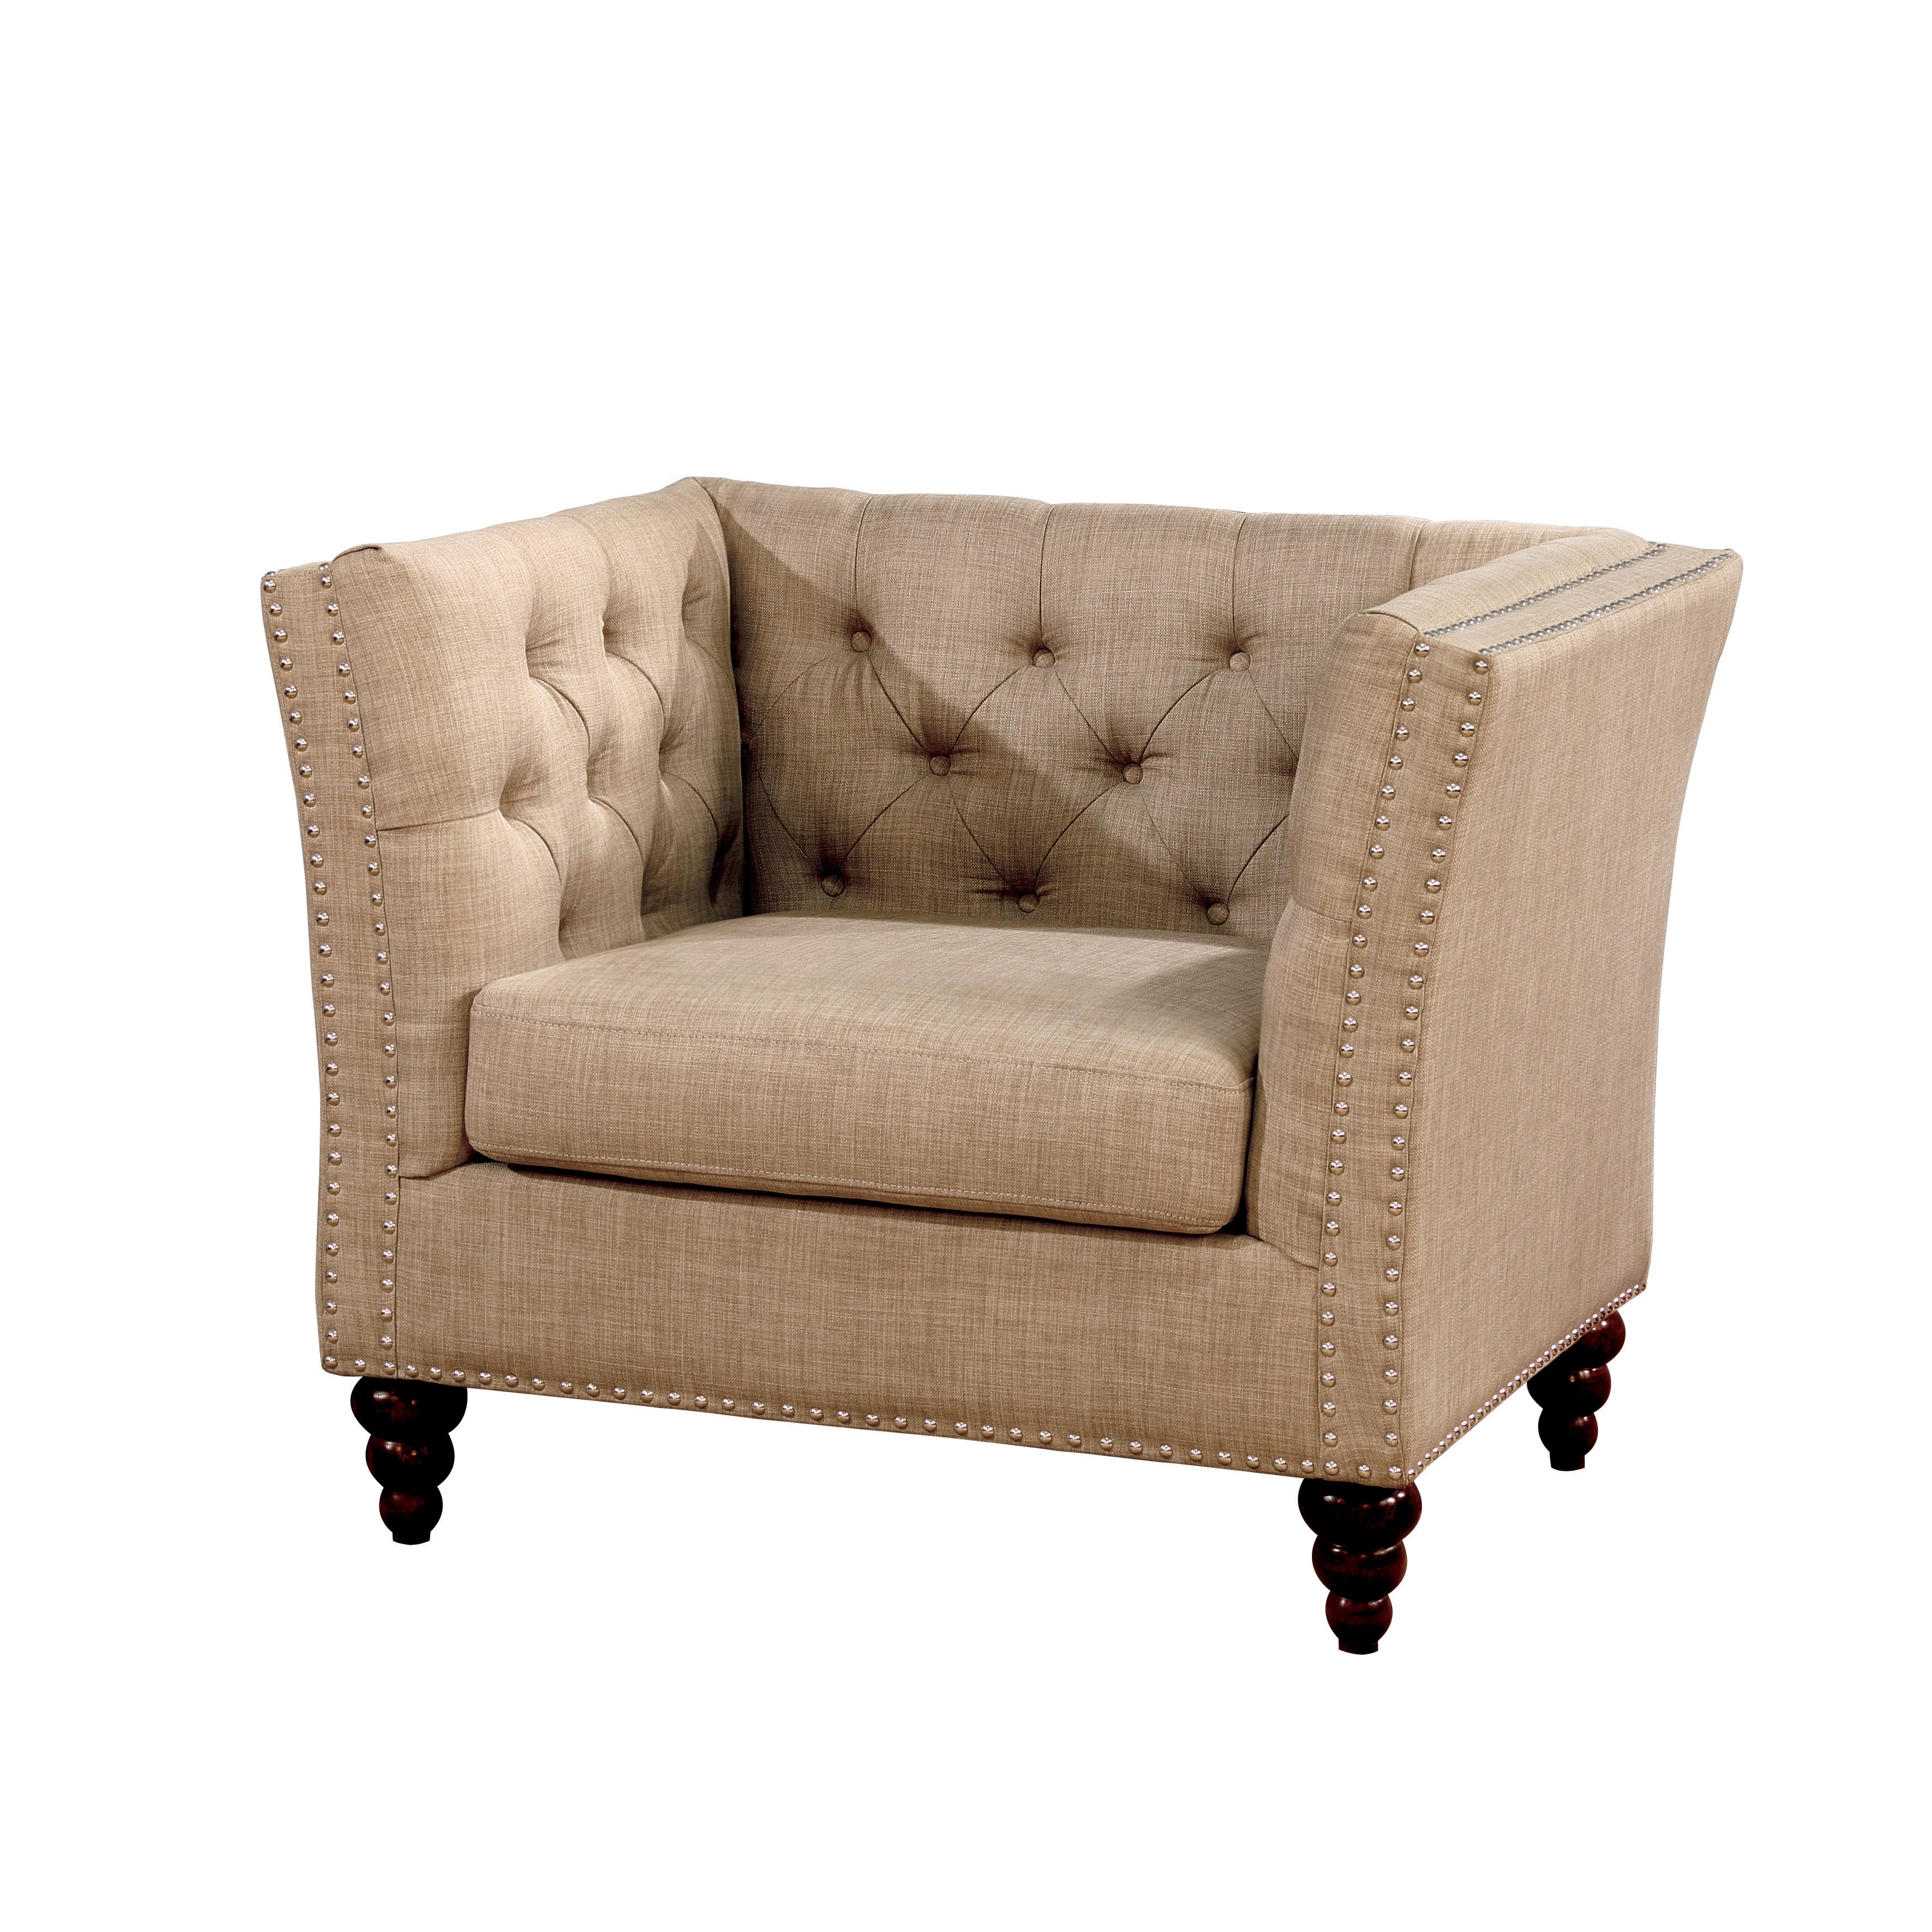 Furniture Of America Cerona Contemporary Tuxedo Style Beige Tufted Linen  Arm Chair   Free Shipping Today   Overstock.com   21090883